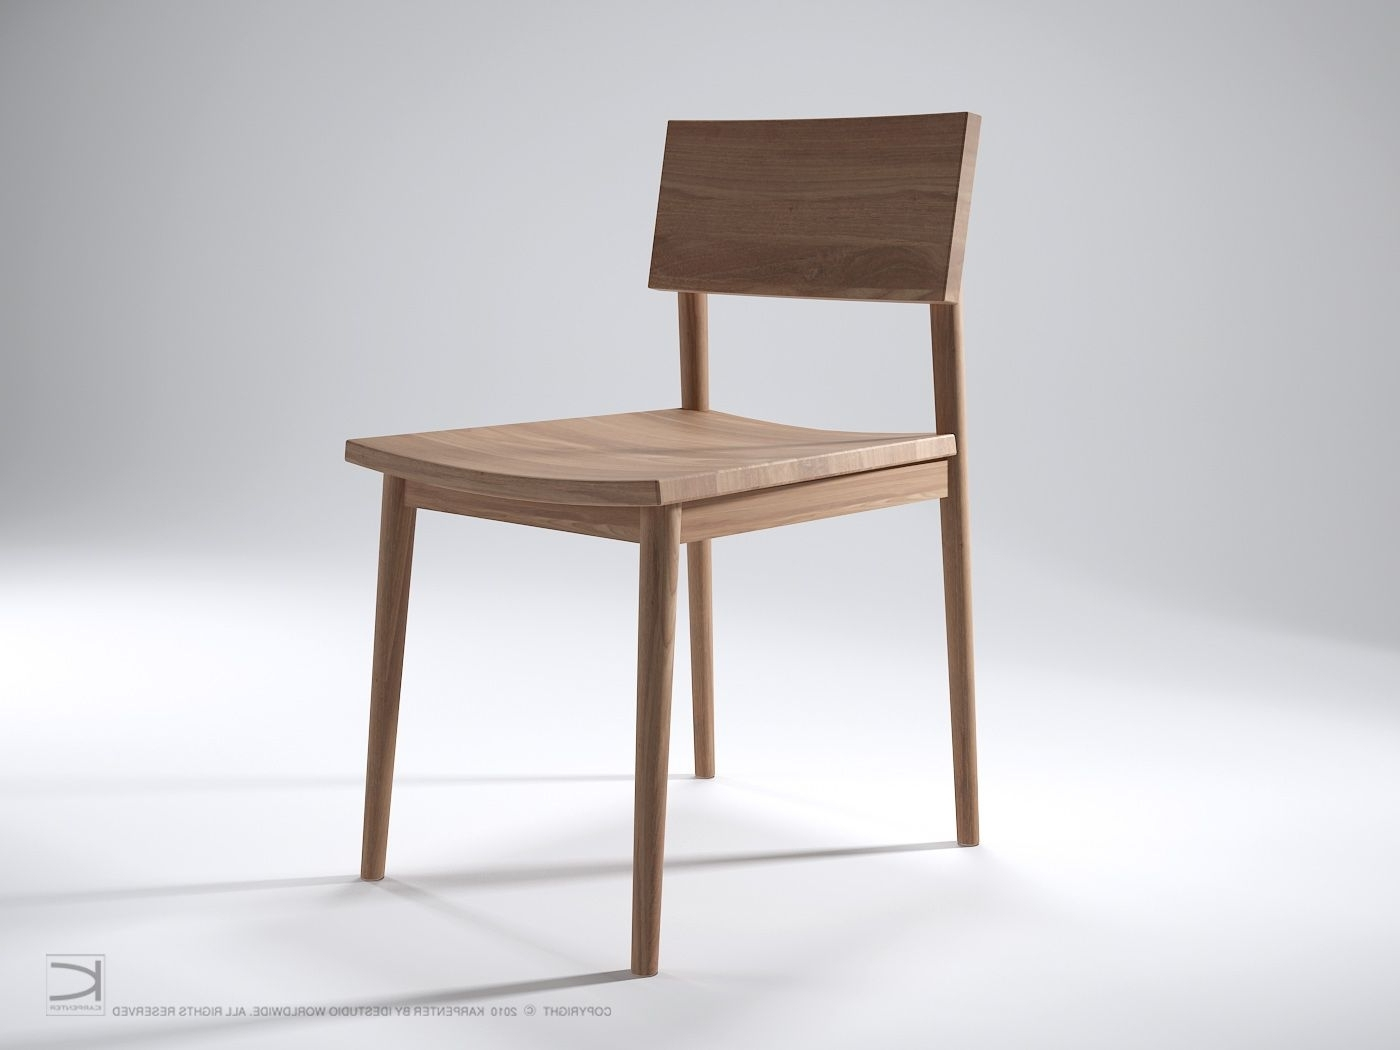 2017 A Very Simple And Stylish Dining Chair, Which Is Beautiful And Within Stylish Dining Chairs (View 1 of 25)